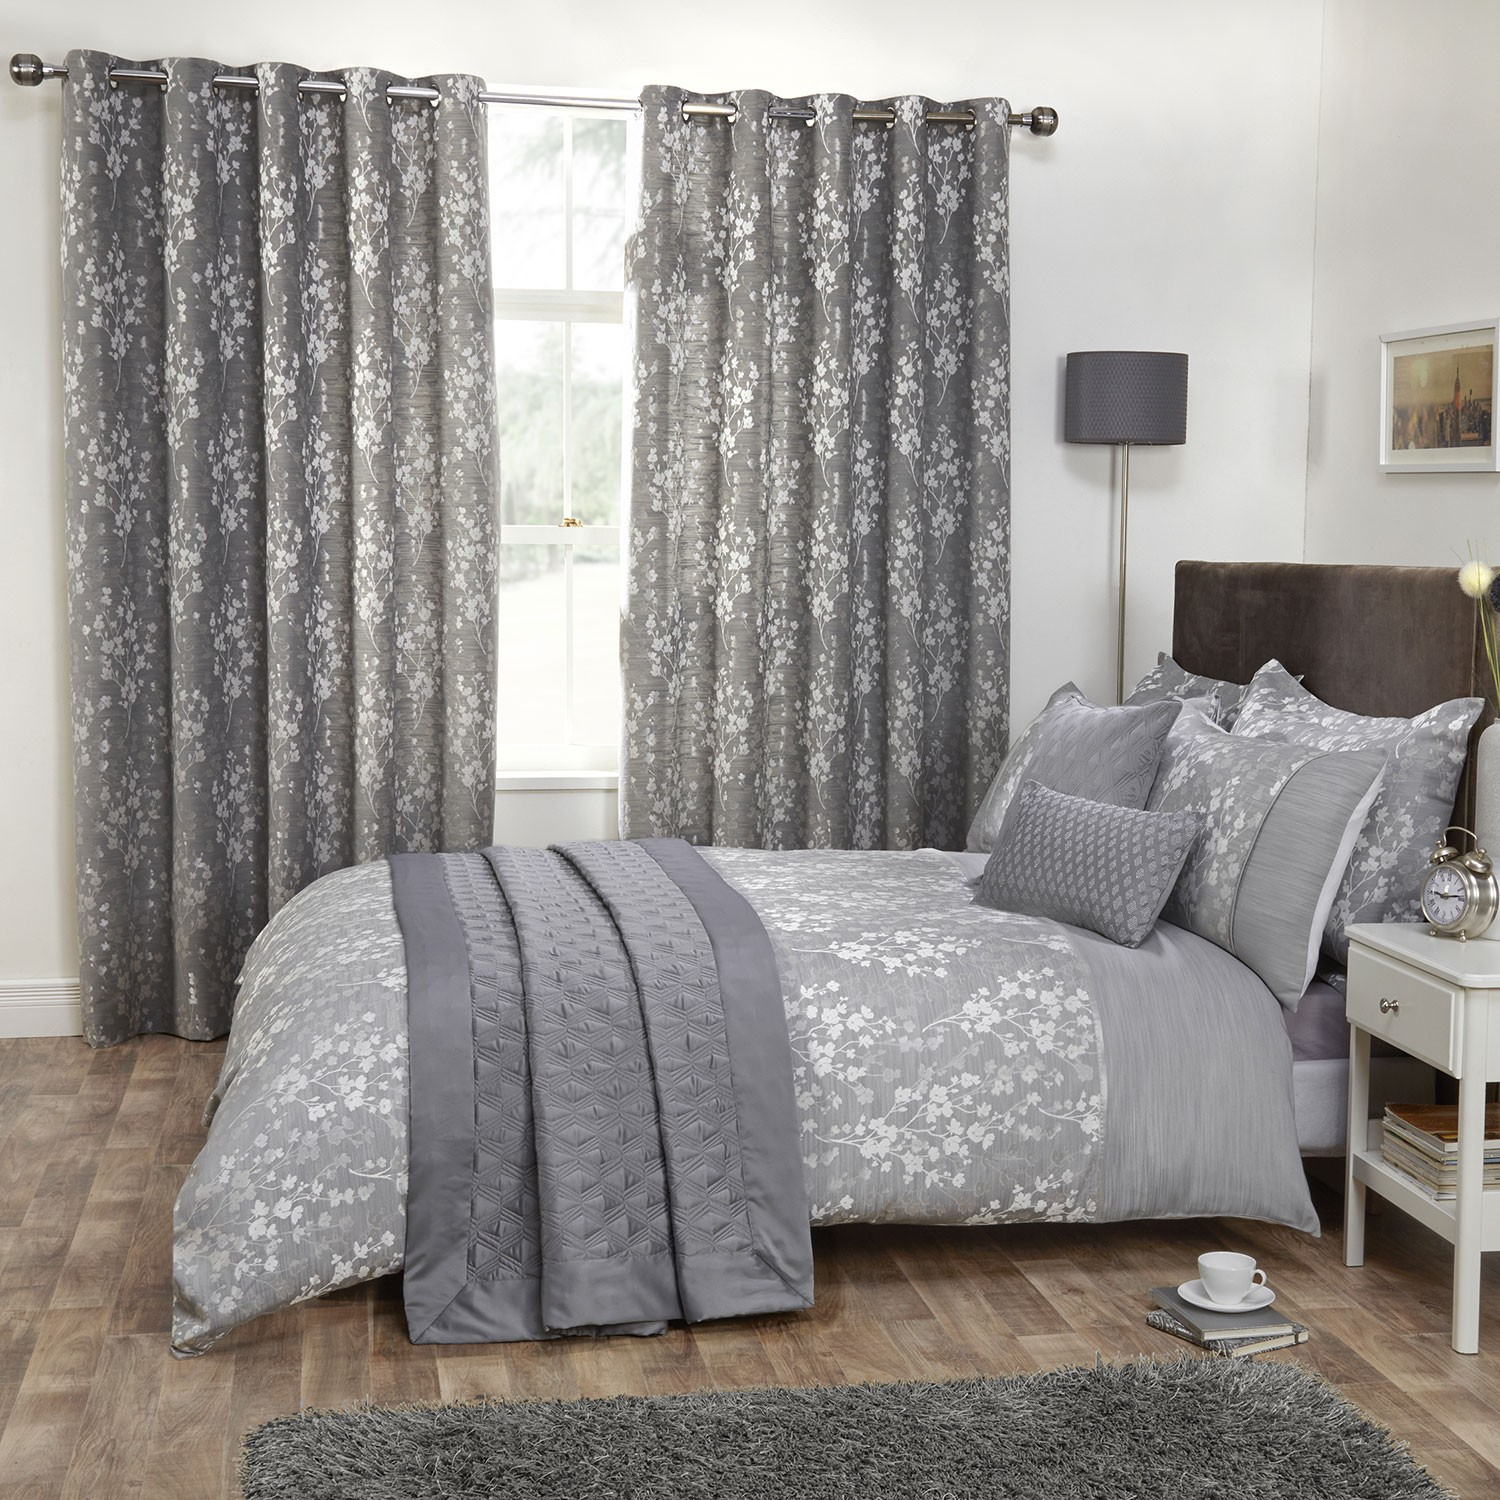 Image of: Blossom Gray Bedroom Sets